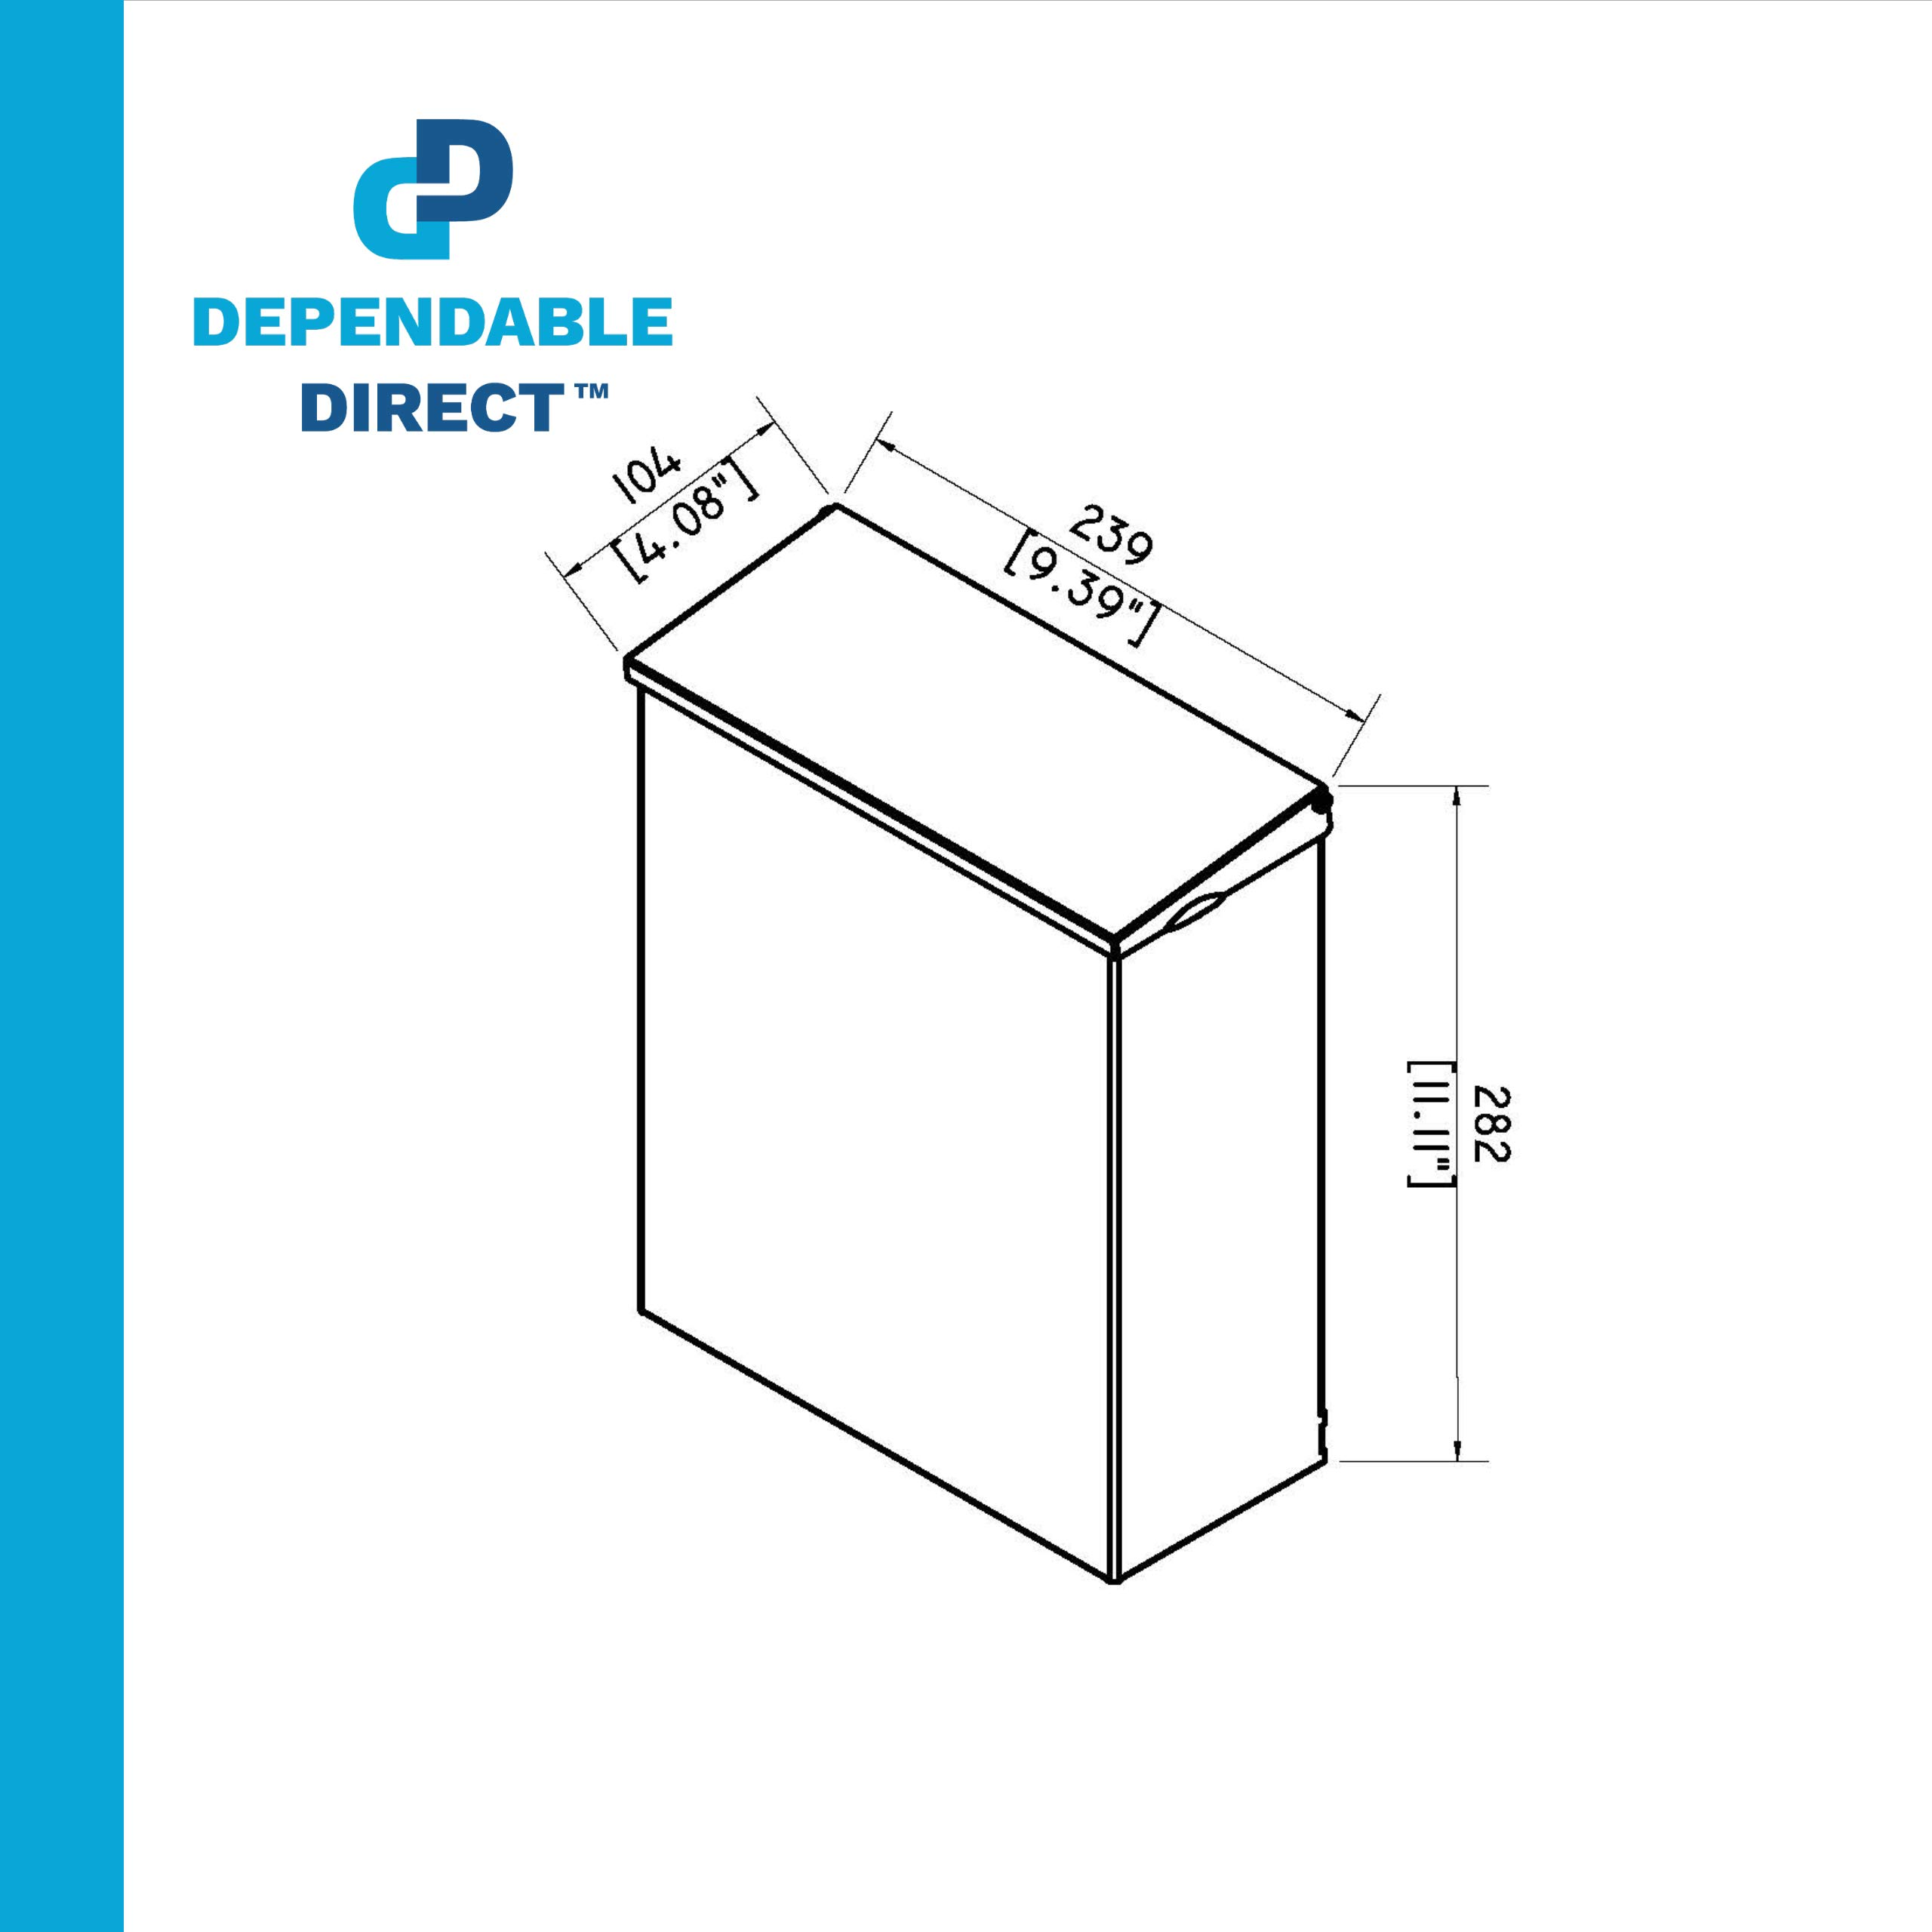 Sanitary Napkin Disposal with Key and Lock - 304 Grade Stainless Steel - 1.8 Gallon Capacity - by Dependable Direct by Dependable Direct (Image #6)